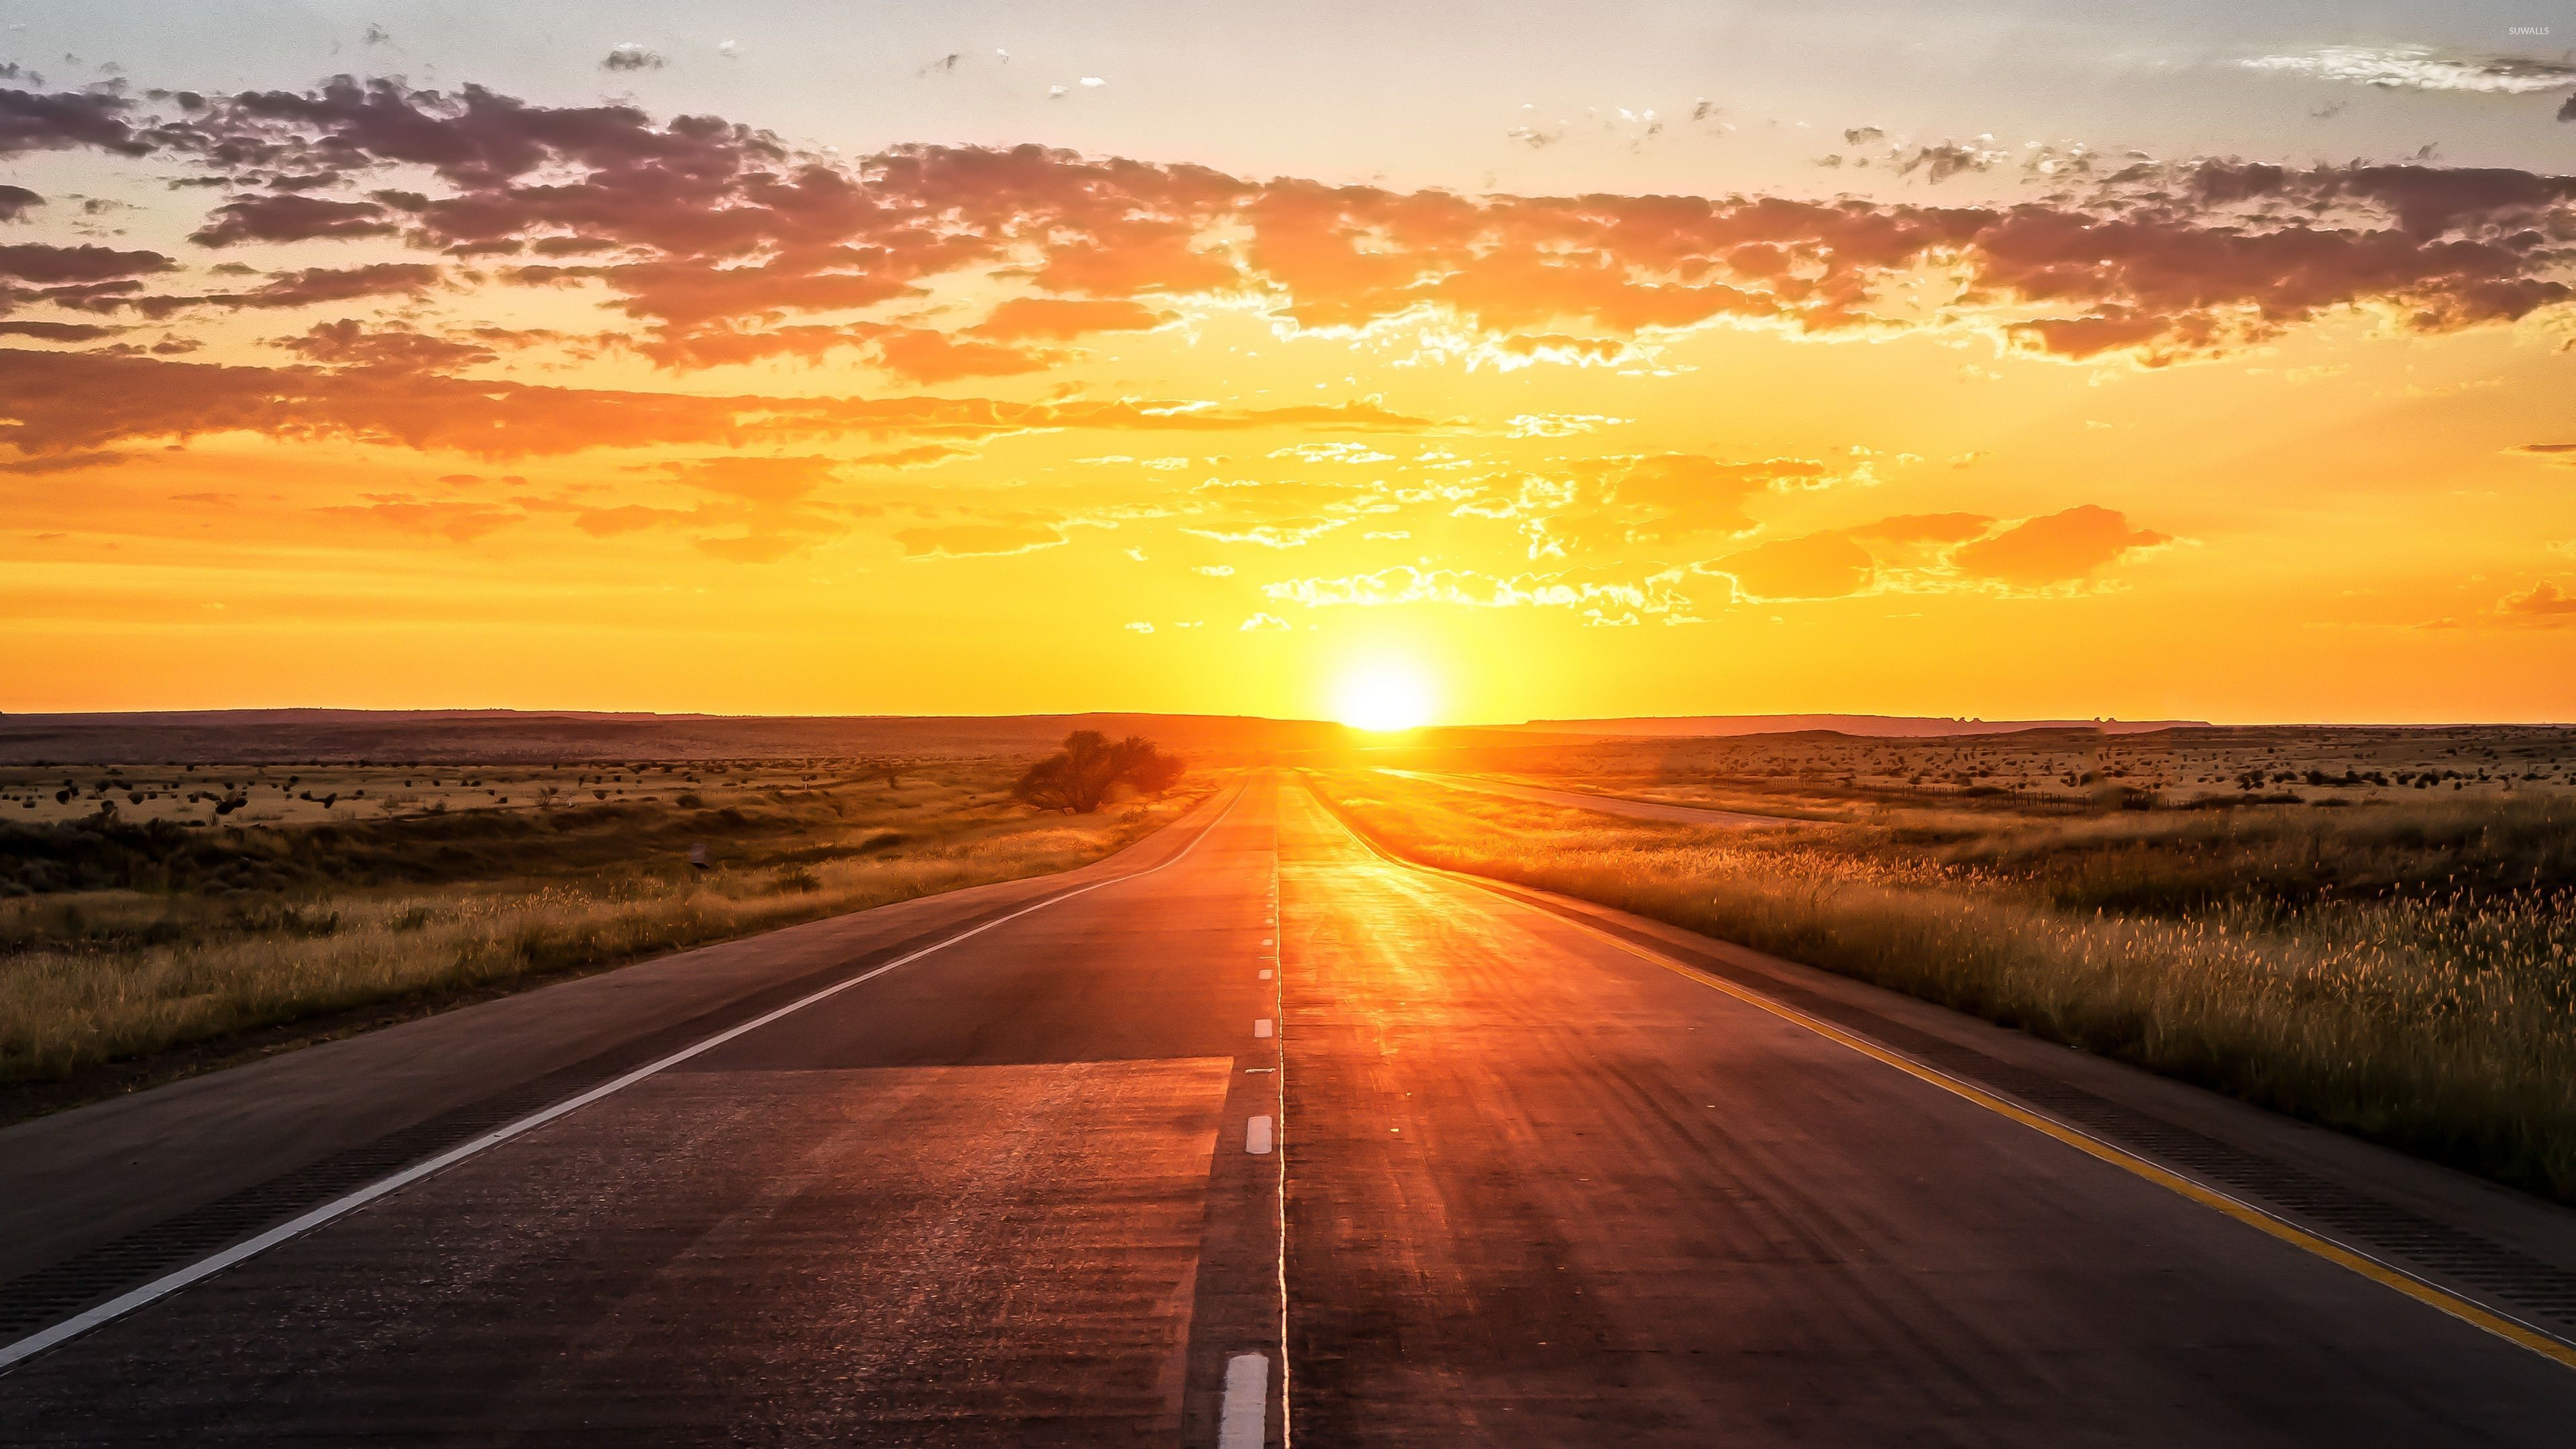 Road Sunset Wallpaper Road towards the golde...